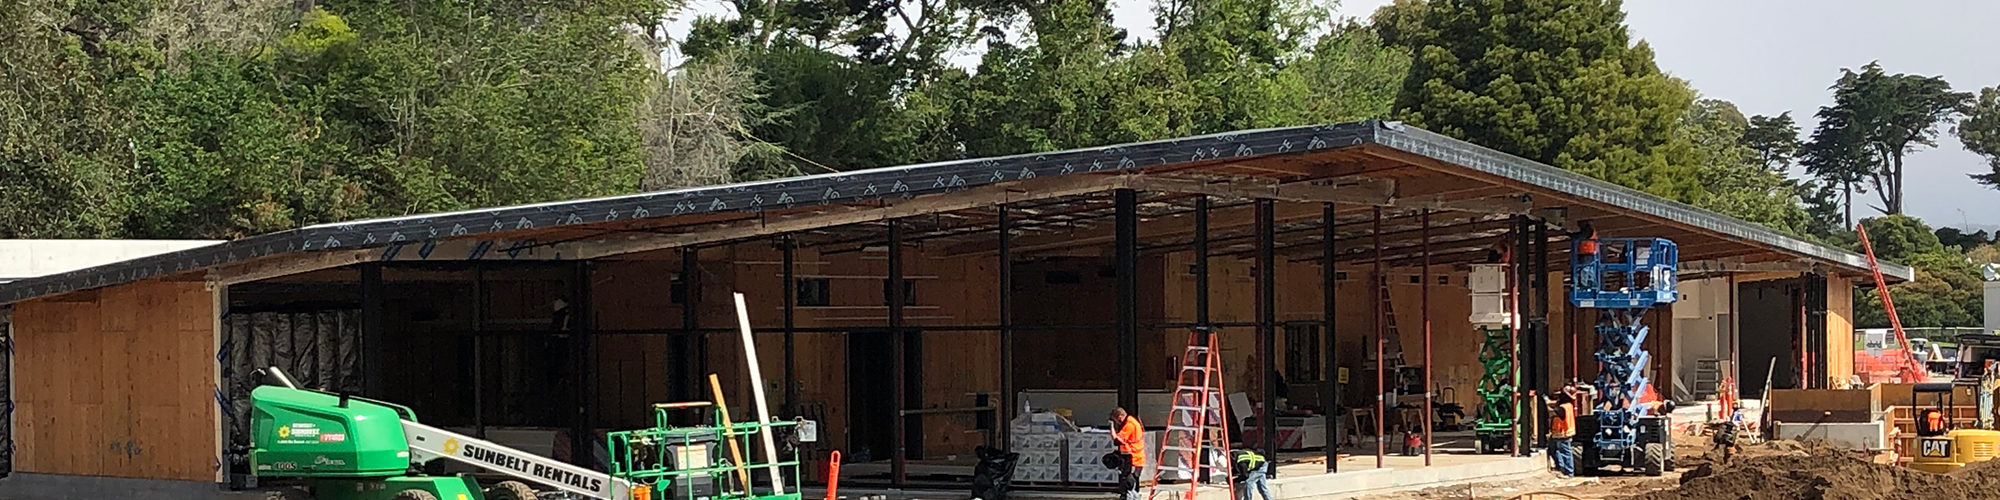 GGPTC clubhouse June 11, 2020